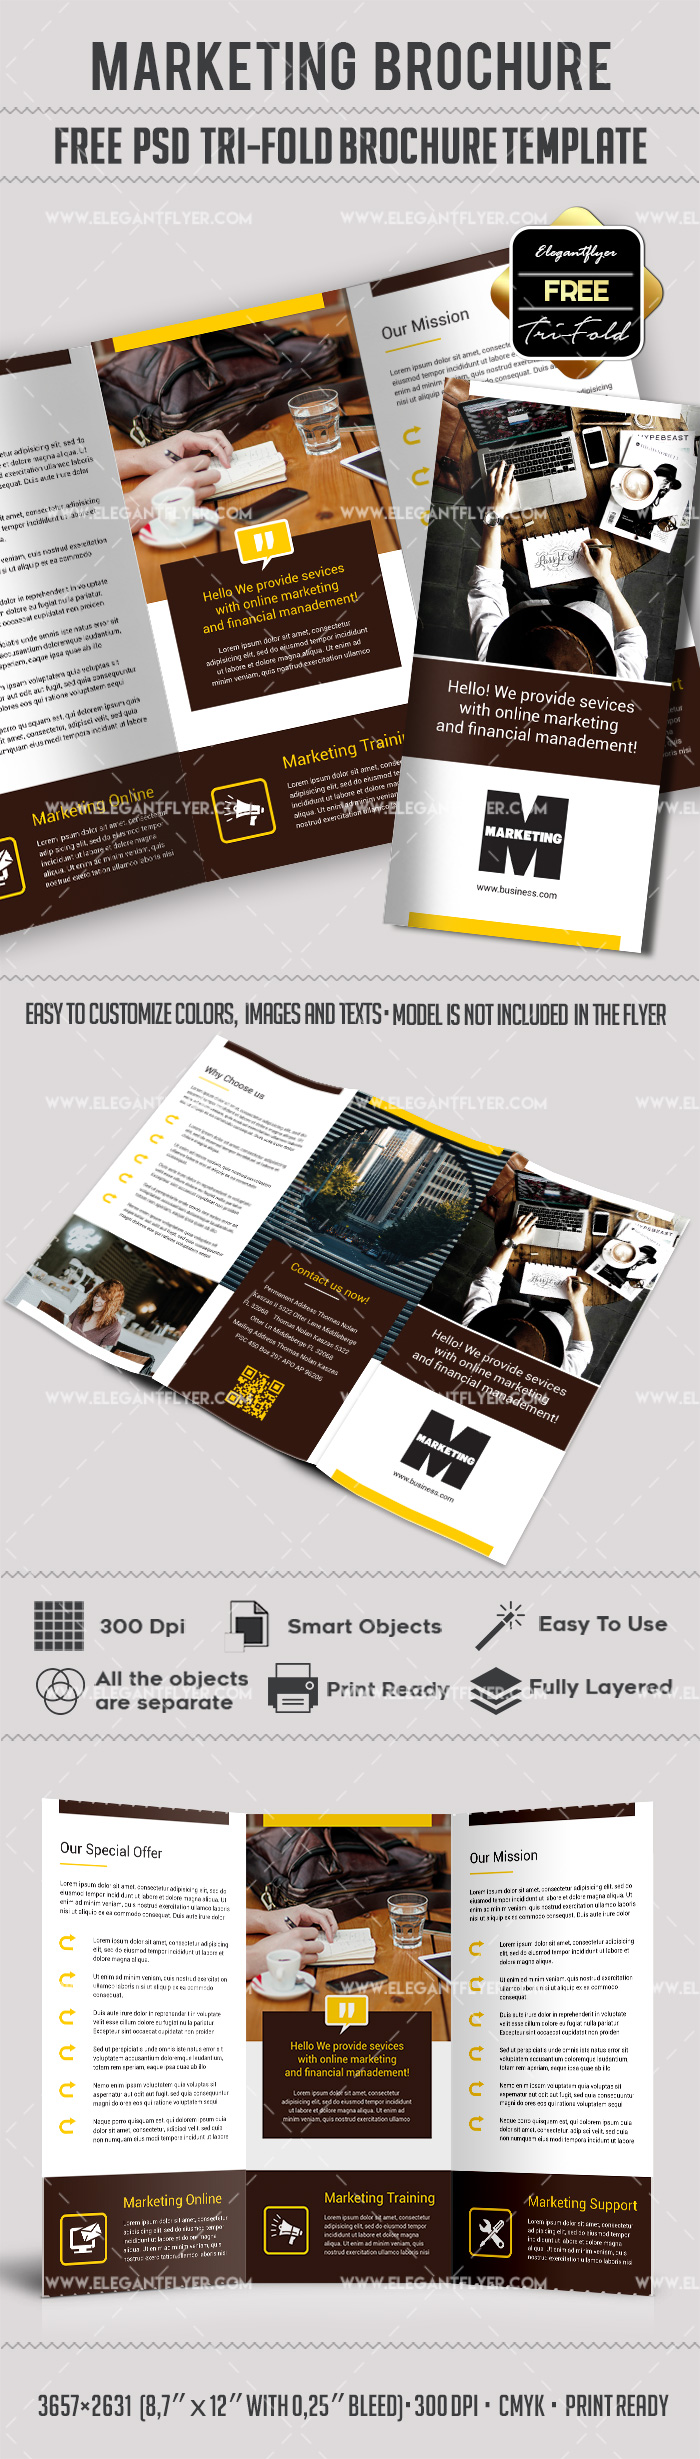 Marketing free tri fold psd brochure template by for Psd brochure templates free download